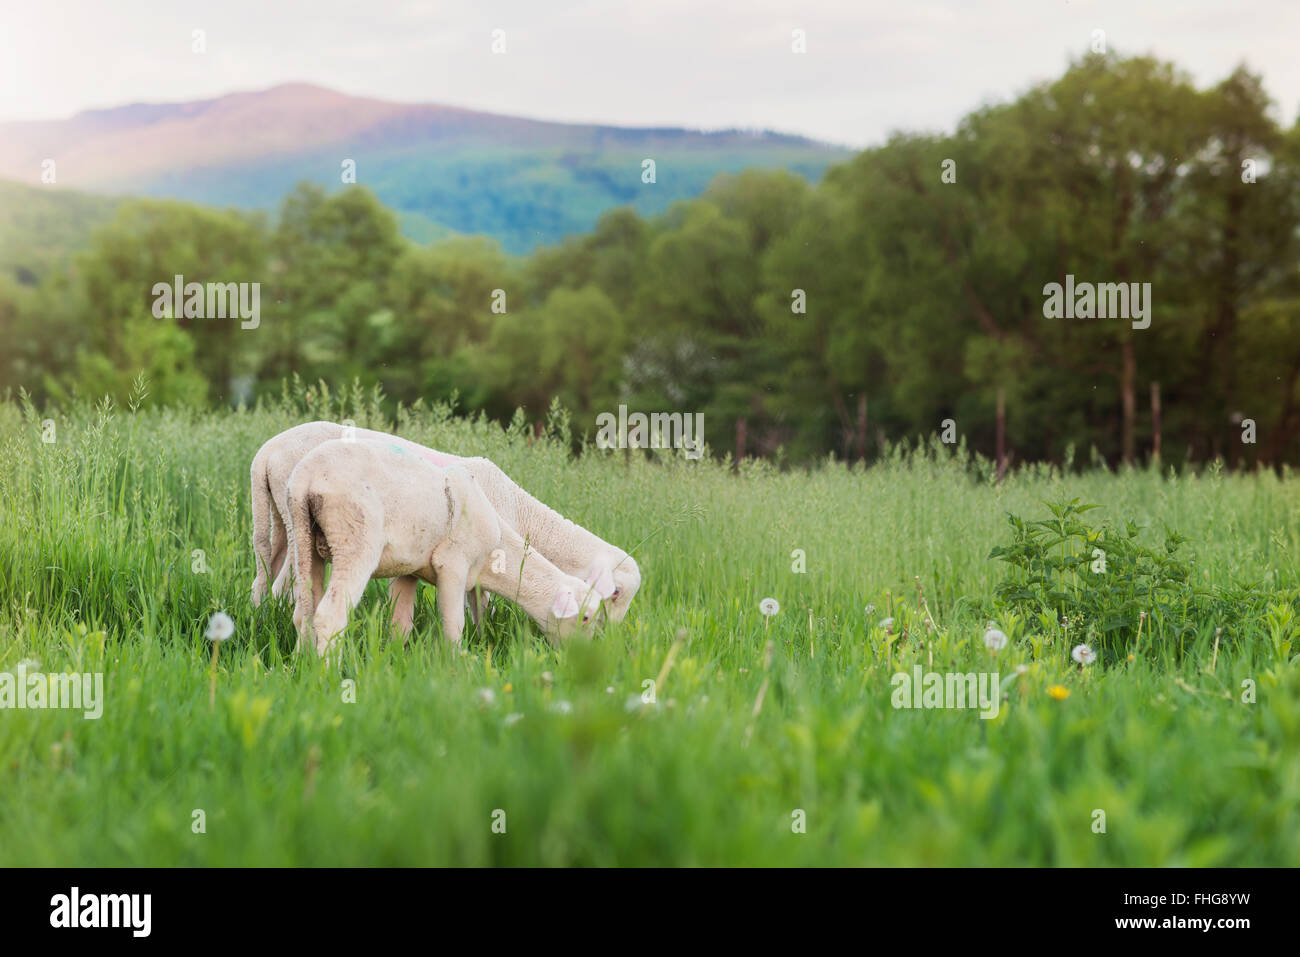 Two sheep grazing on meadow, green grass and trees - Stock Image